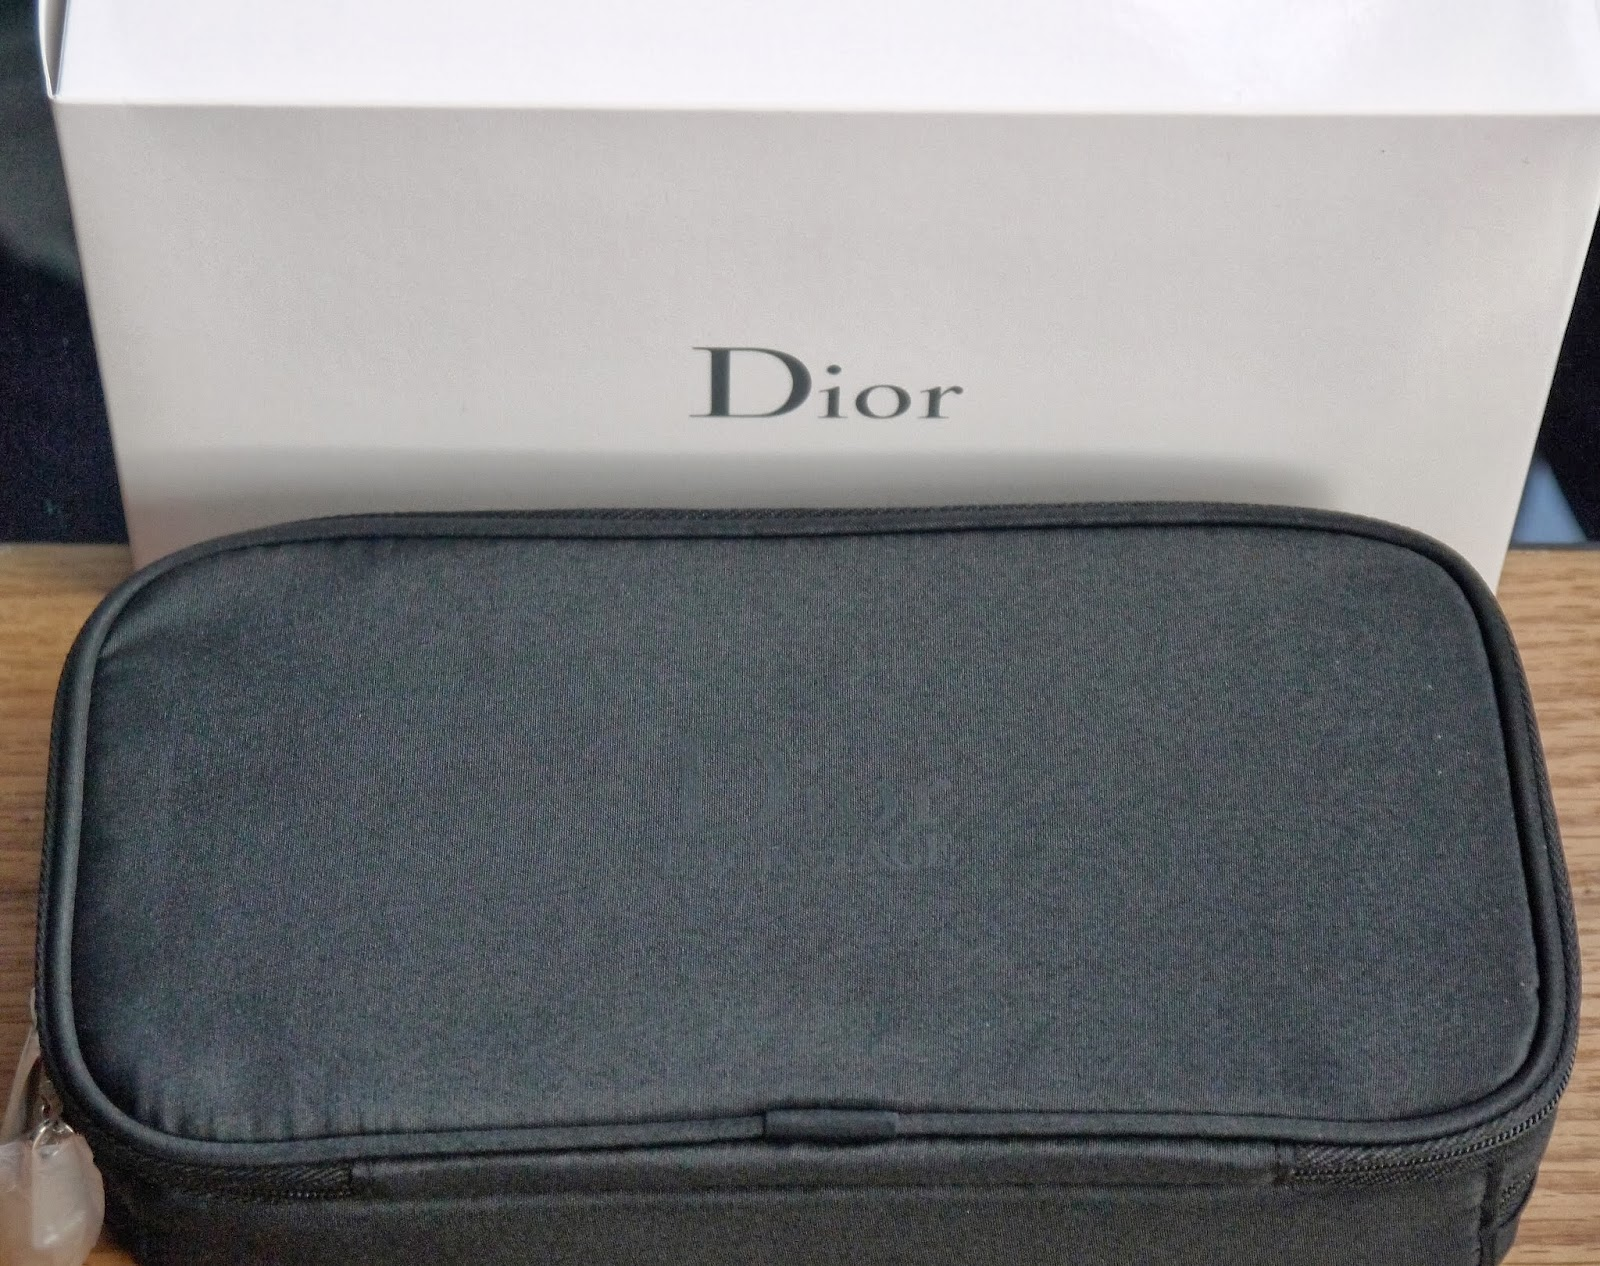 Dior Trousse Pouch from my Beauty Haul